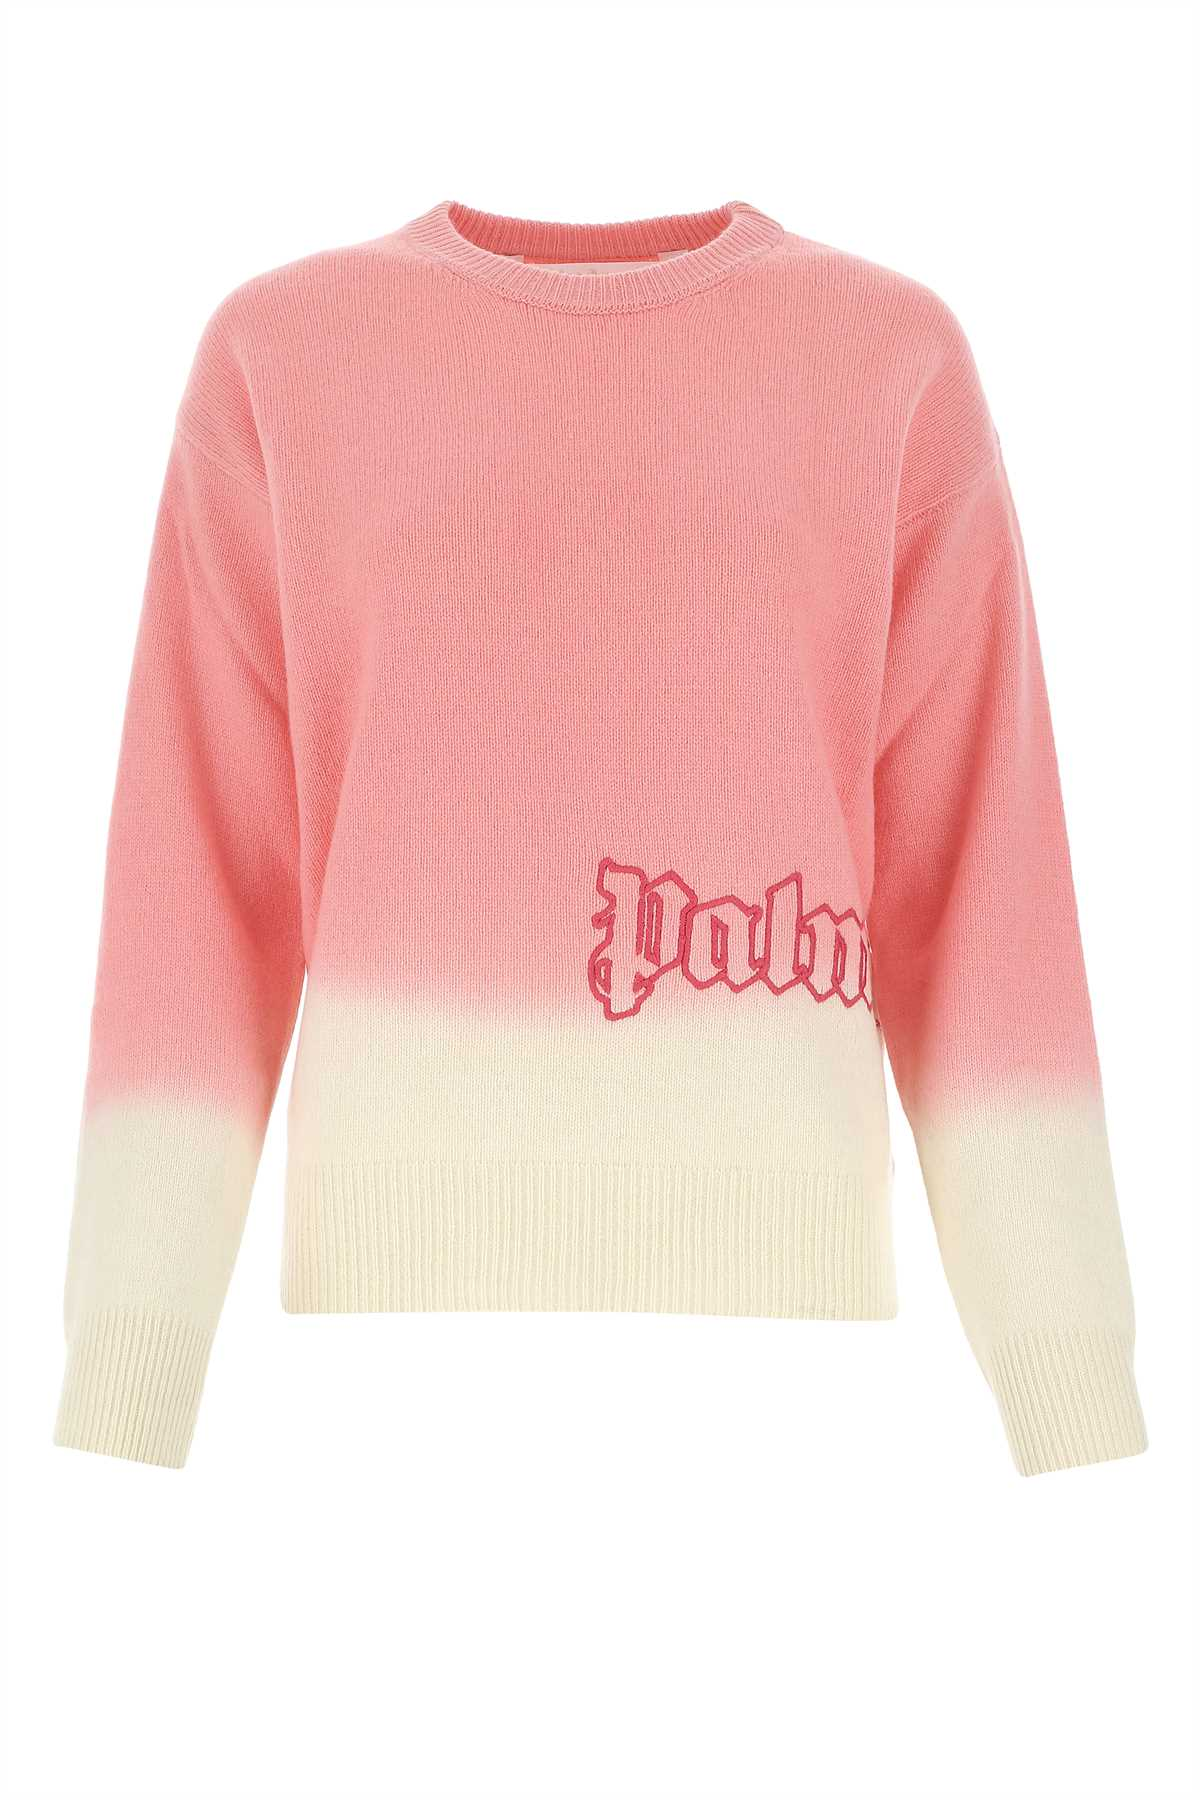 Palm Angels Tops PALM ANGELS LOGO EMBROIDERED GRADIENT SWEATER